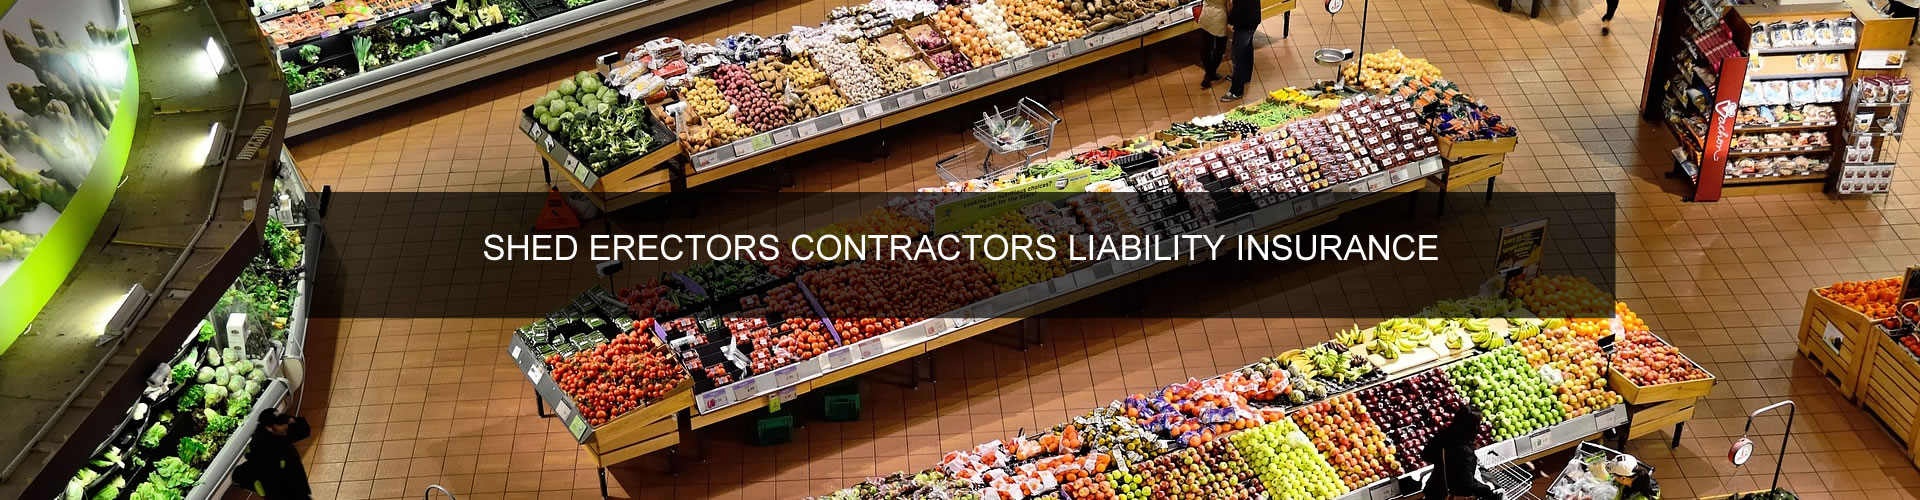 Shop Fitting Contractors Liability Insurance